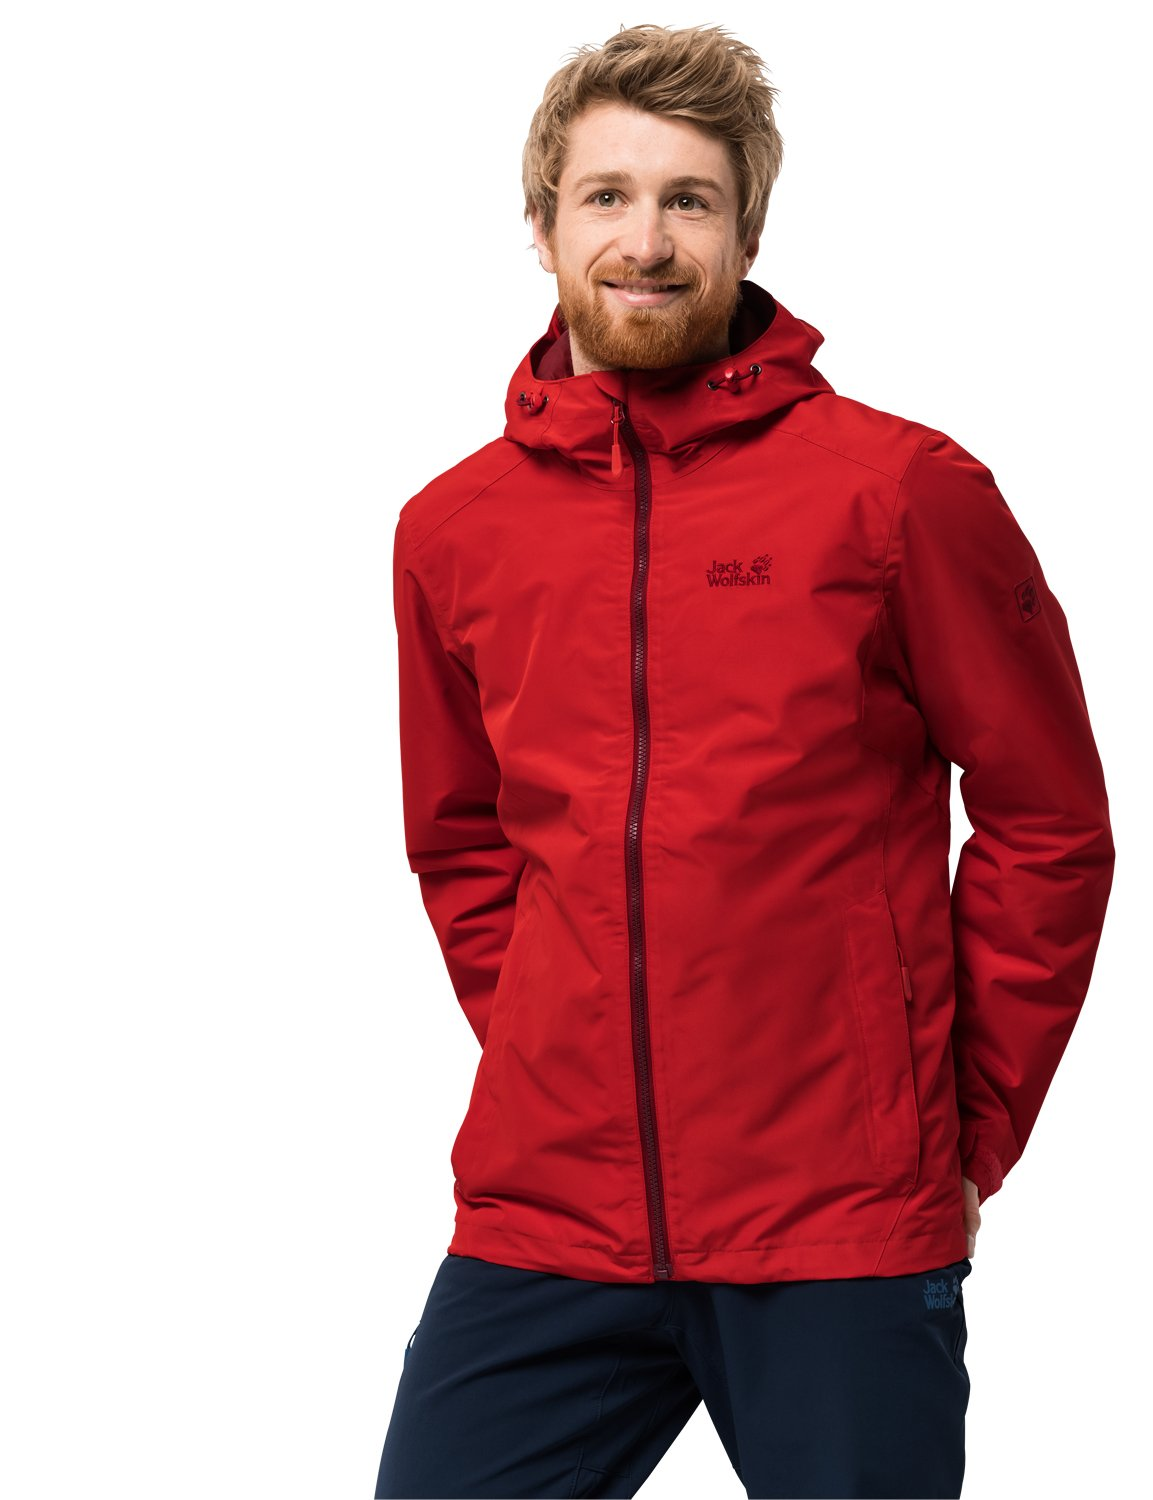 Jack Wolfskin Men's Chilly Morning Waterproof Insulated Jacket, Peak Red, Small 1108353